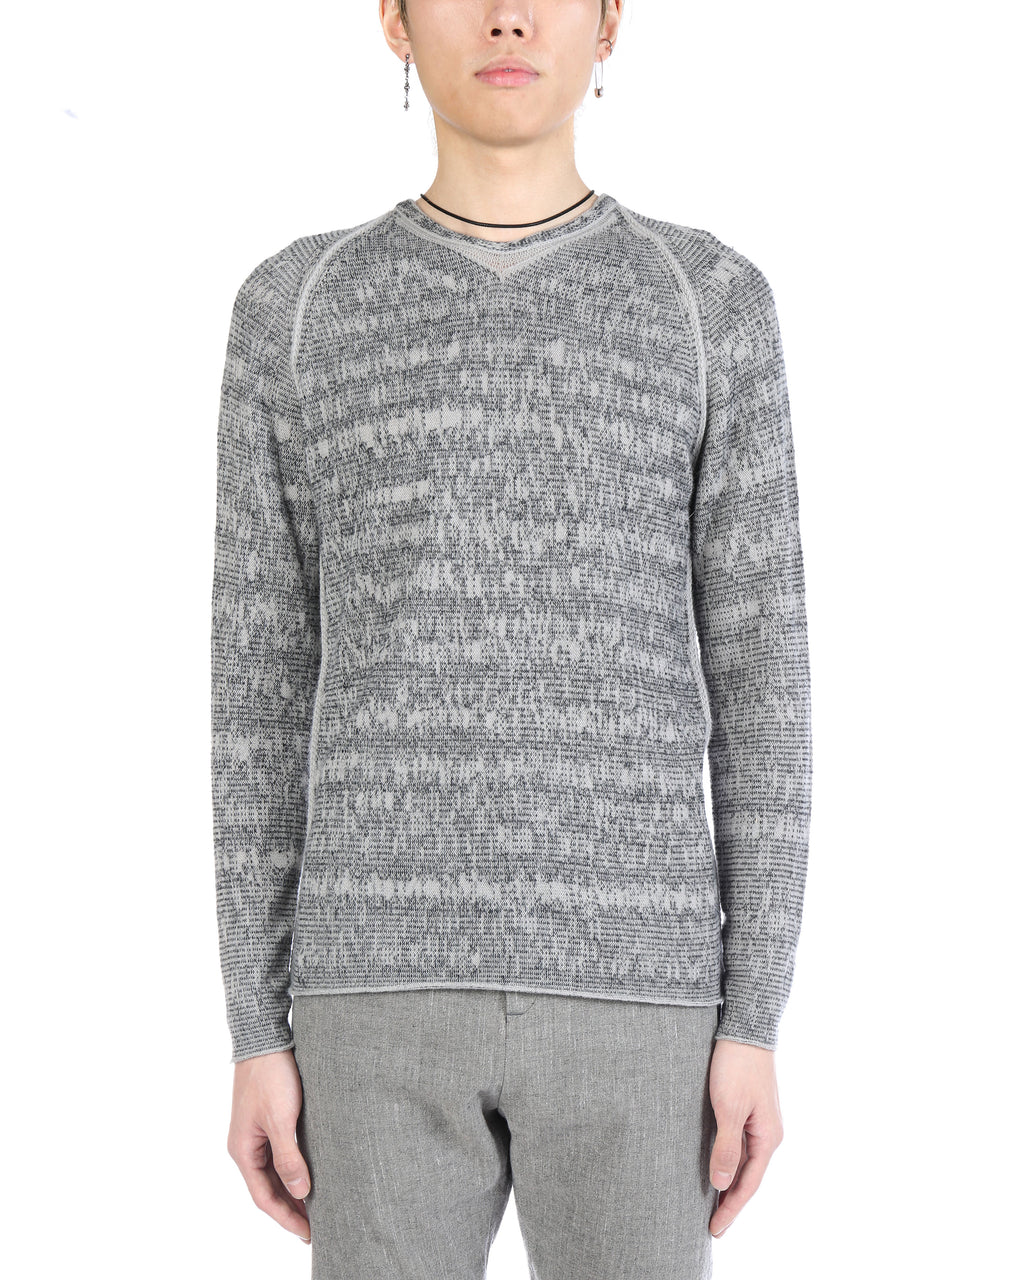 LABEL UNDER CONSTRUCTION MEN ZIPPED SEAMS BARCODE SWEATER